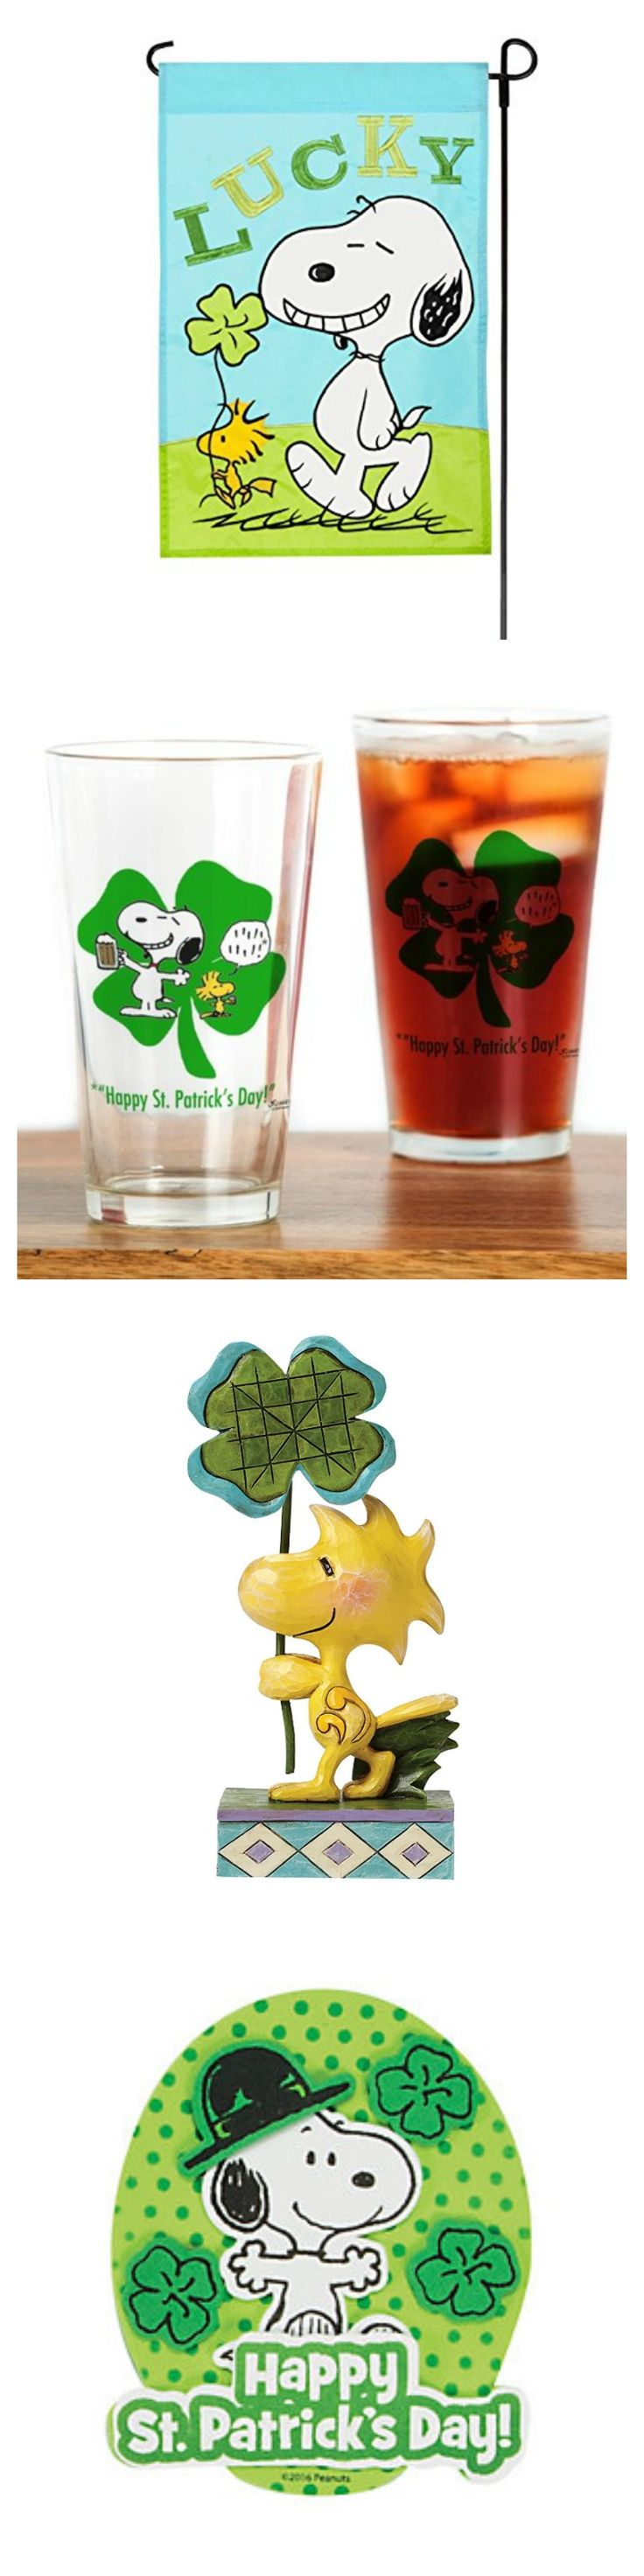 It's your lucky day, Snoopy! Shop our round-up to find Peanuts St. Patrick's Day memorabilia for your celebration. Start shopping via CollectPeanuts.com.